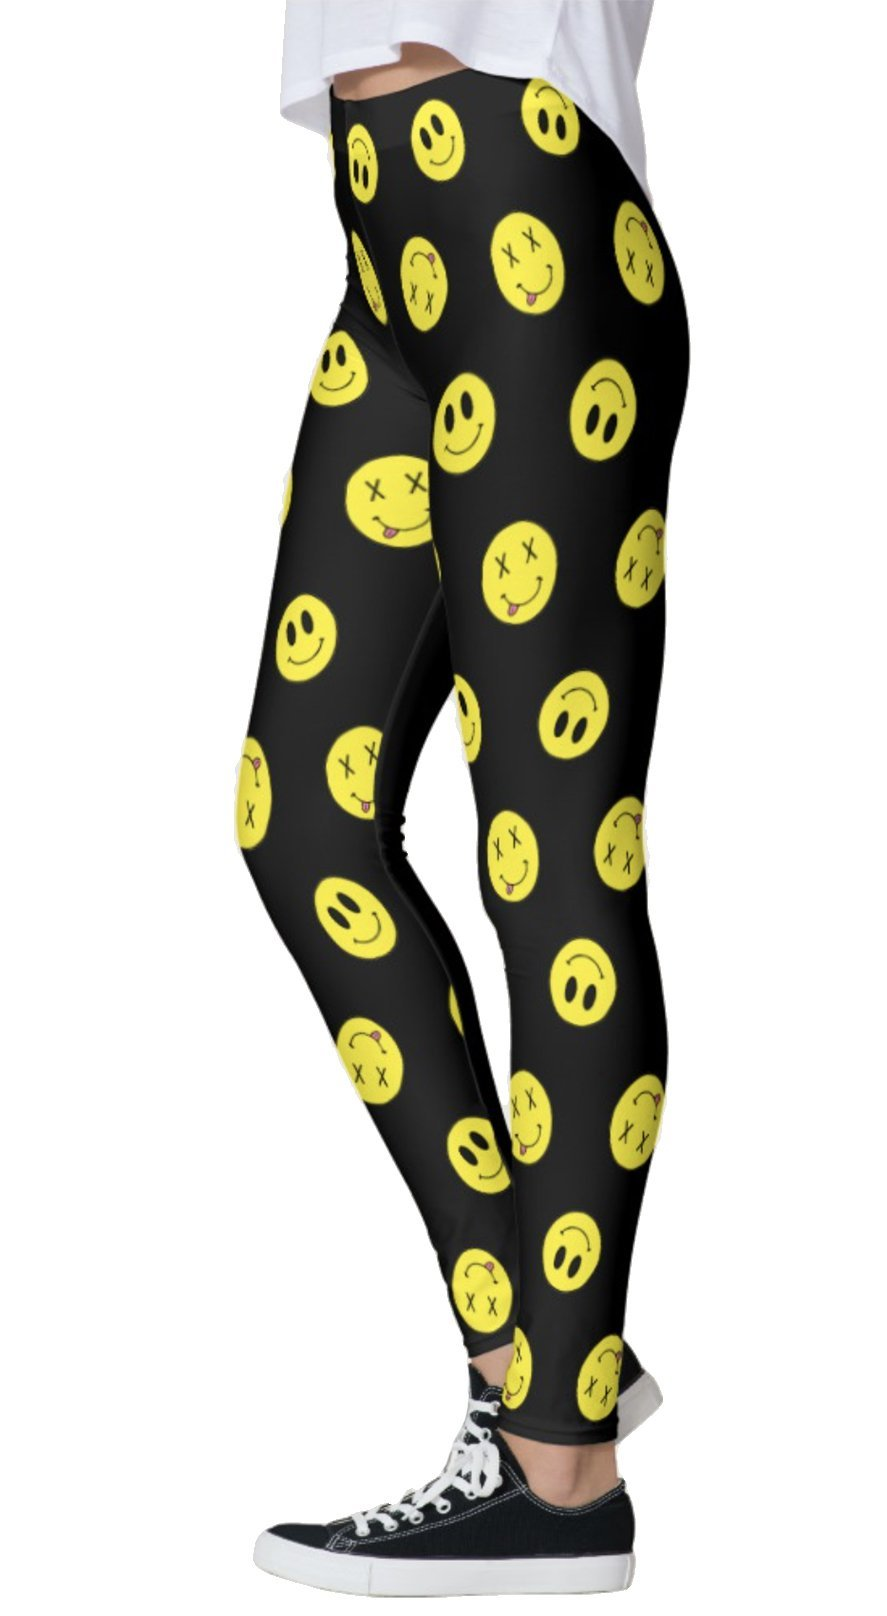 Tilted Smiley Leggings